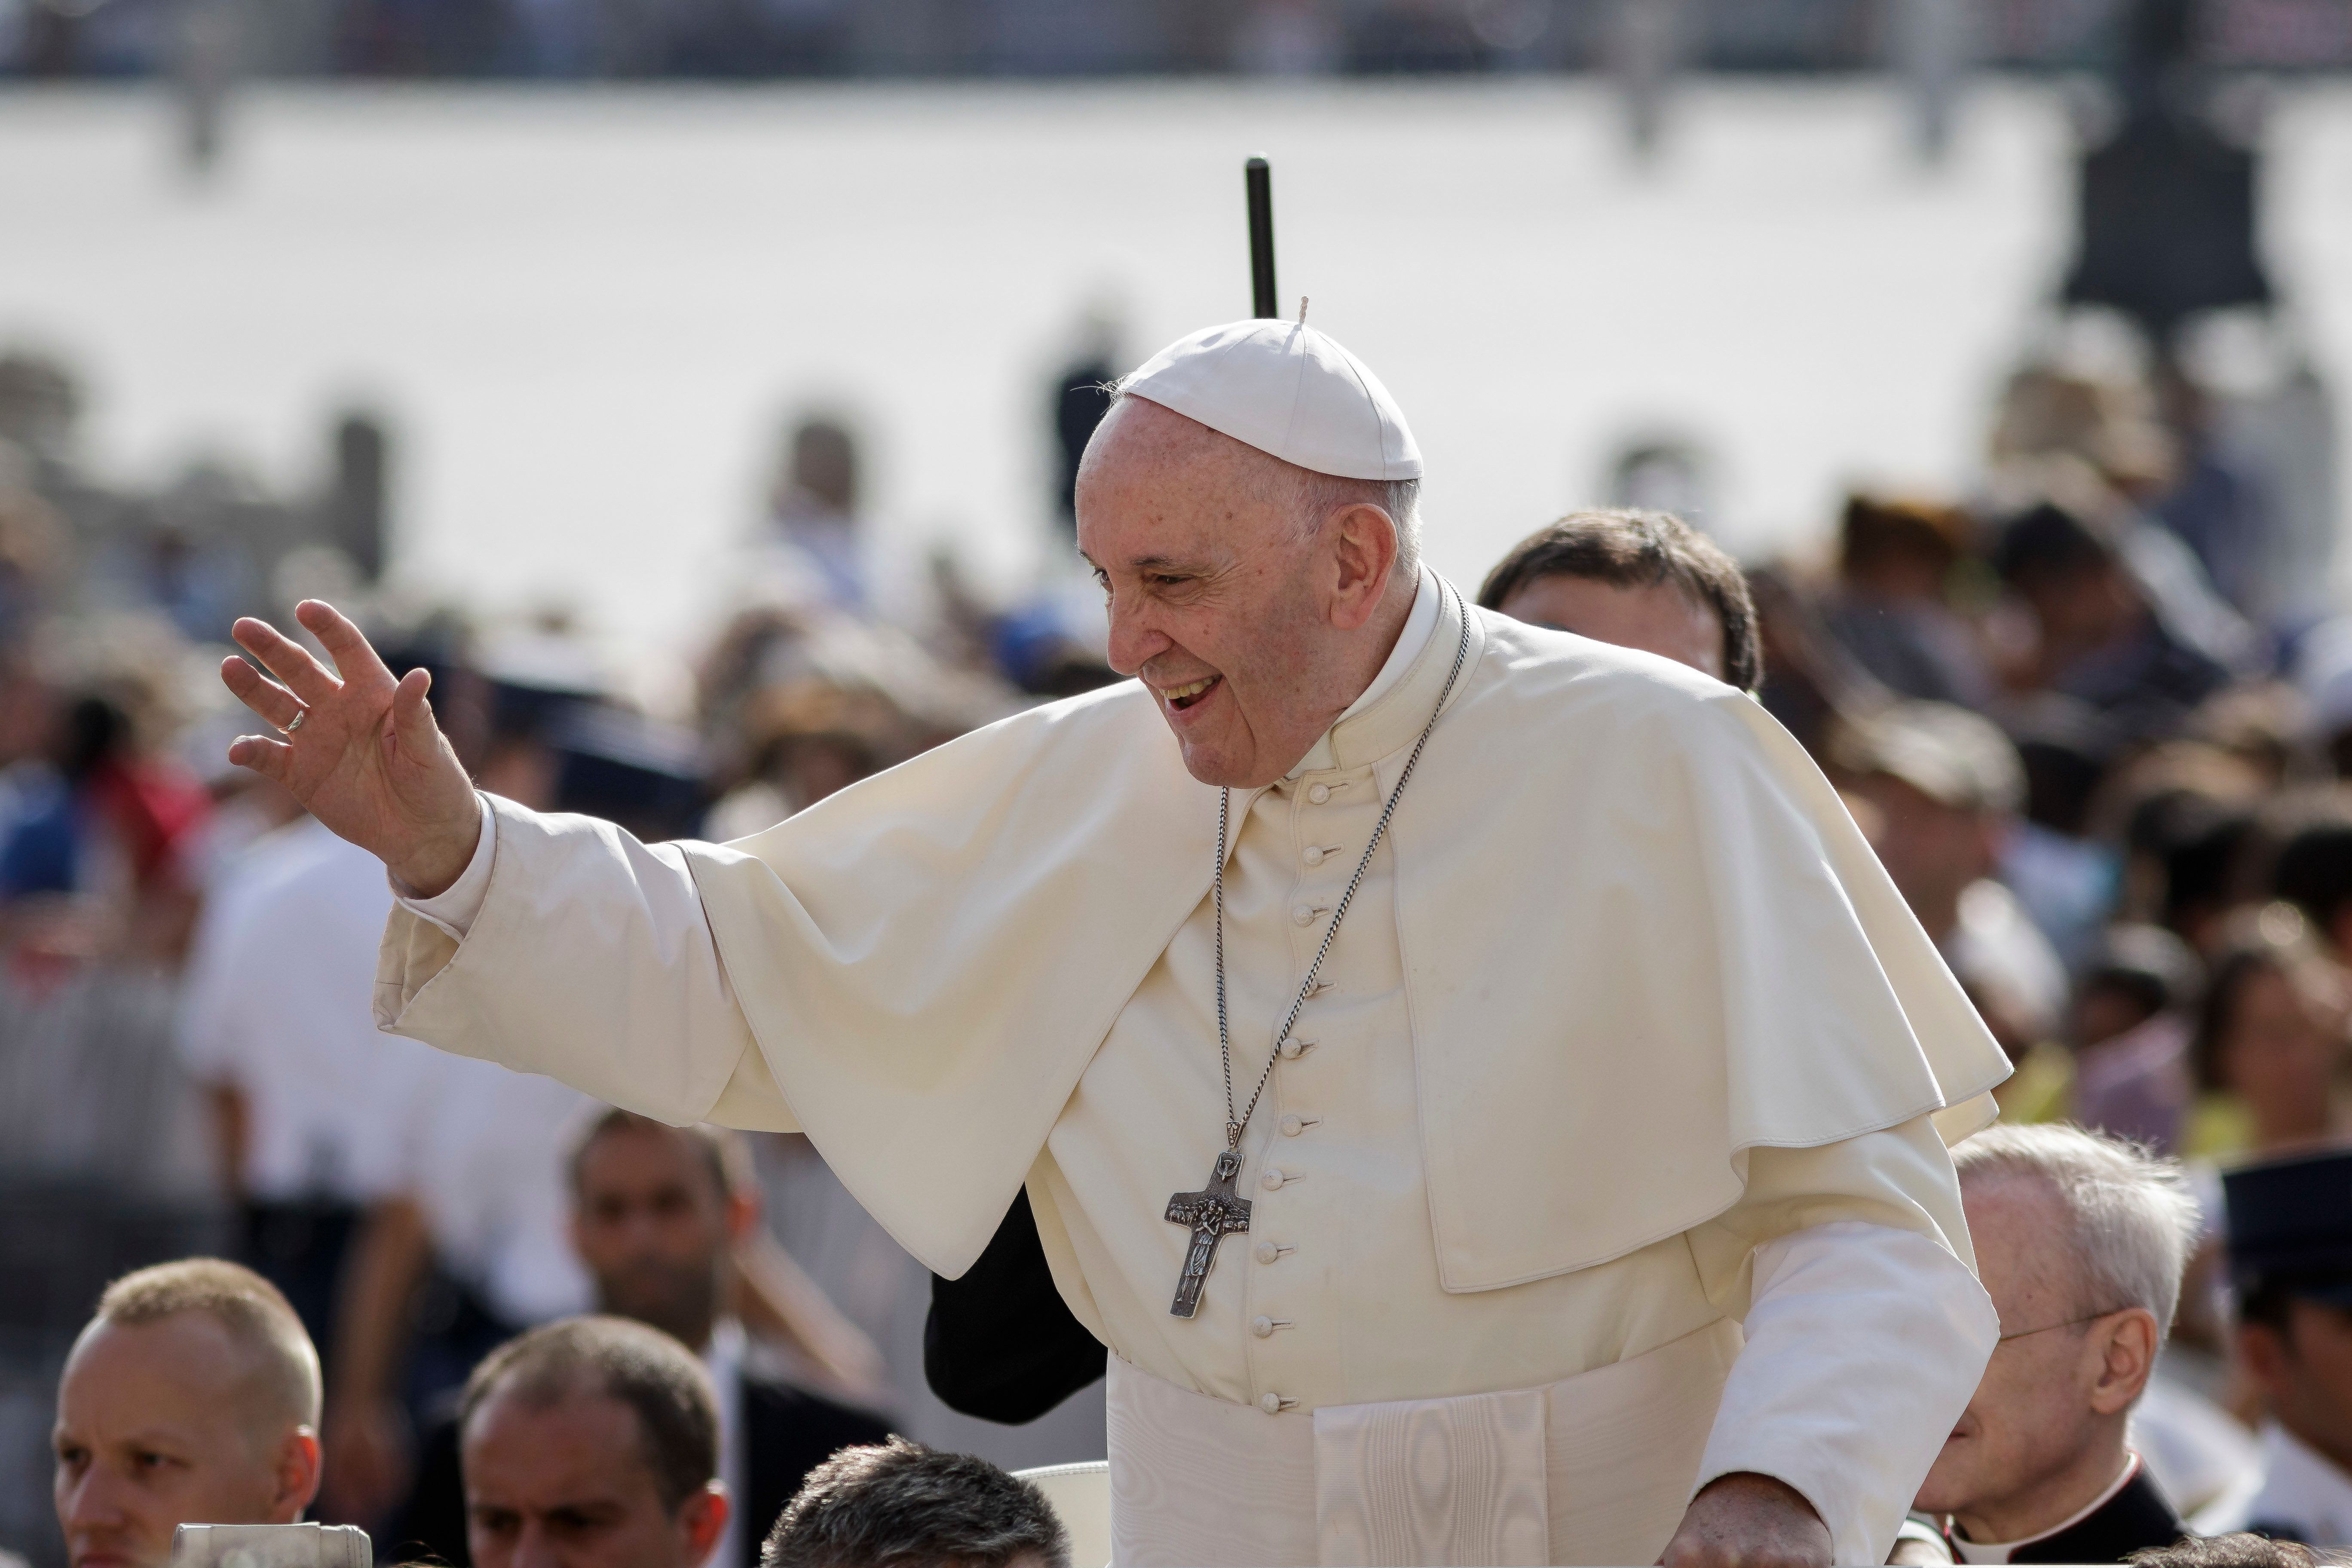 Pope Francis said he received six months of psychoanalysis during a difficult period of his